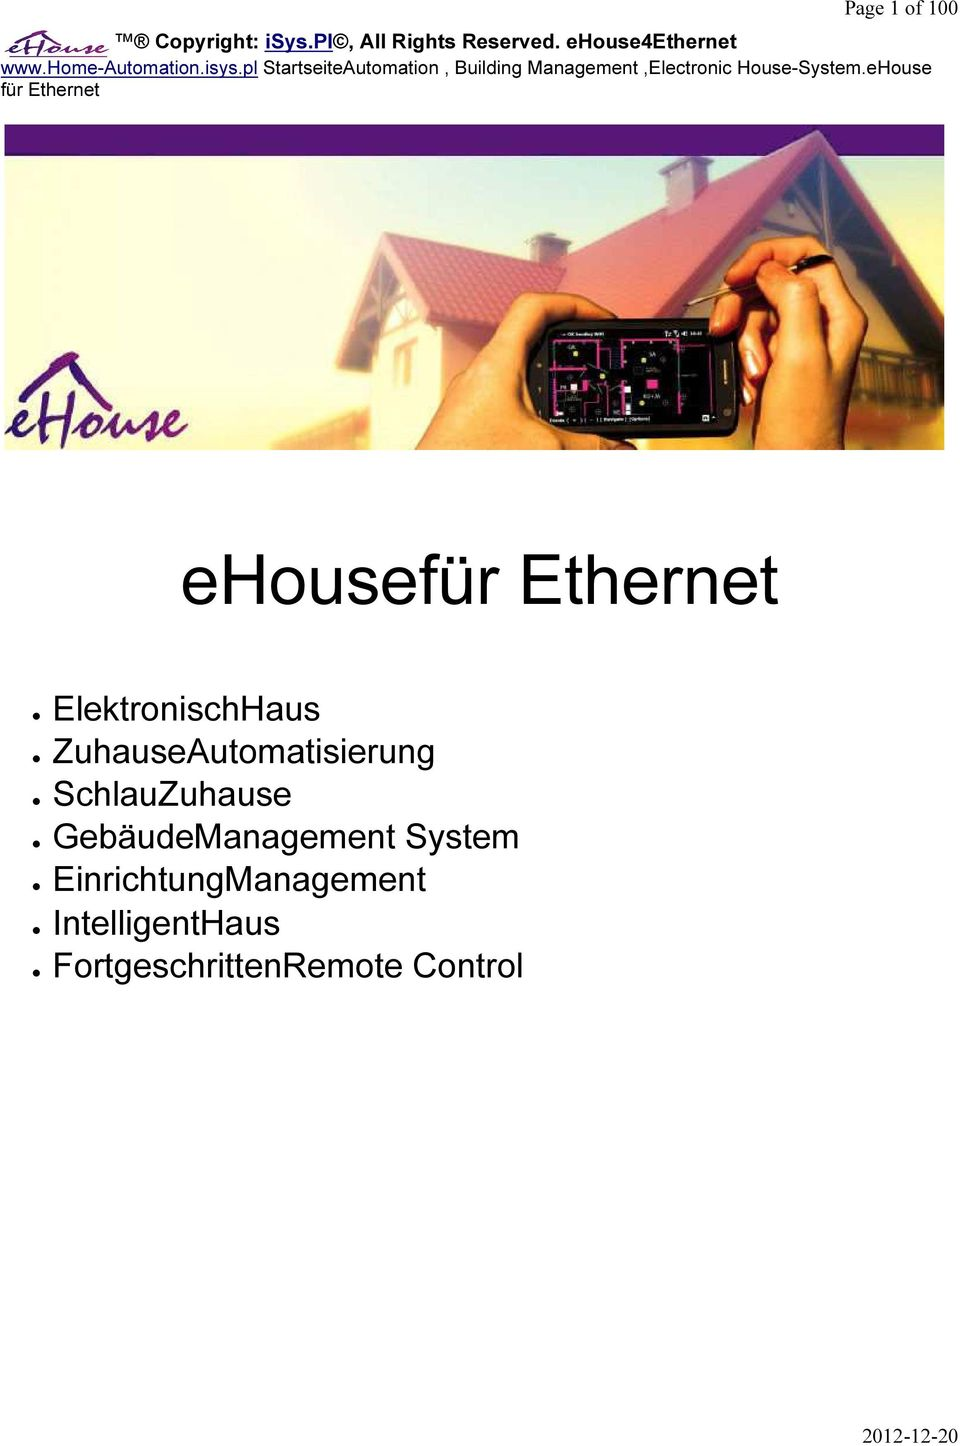 pl StartseiteAutomation, Building Management,Electronic House-System.